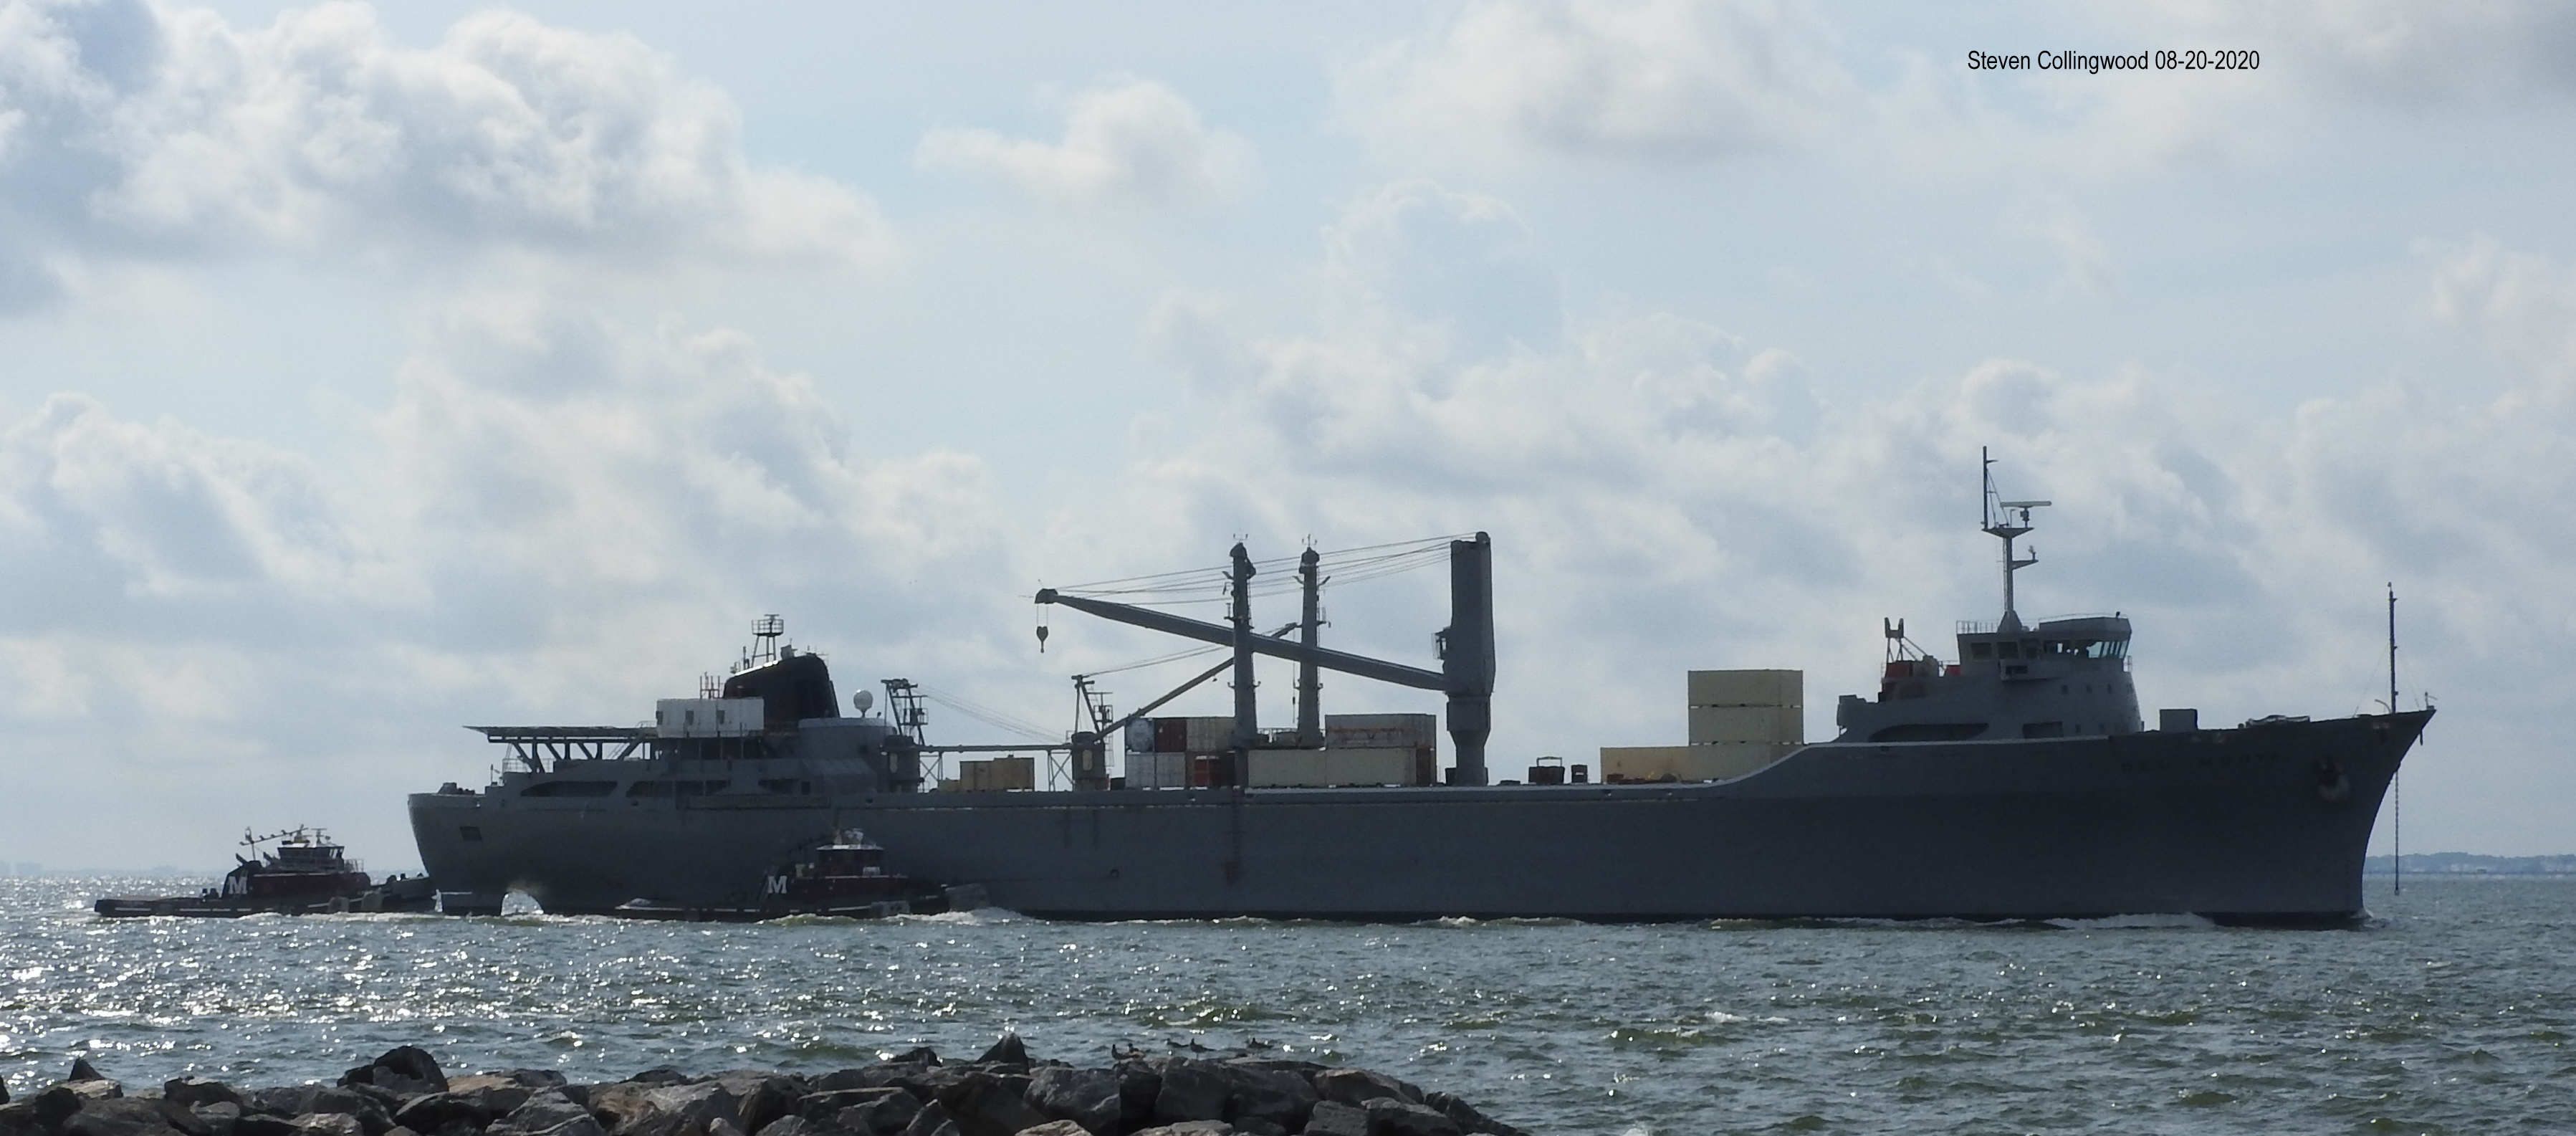 Del Monte under tow in 2020. Credit: Steven Collingwood on shipspotting.com